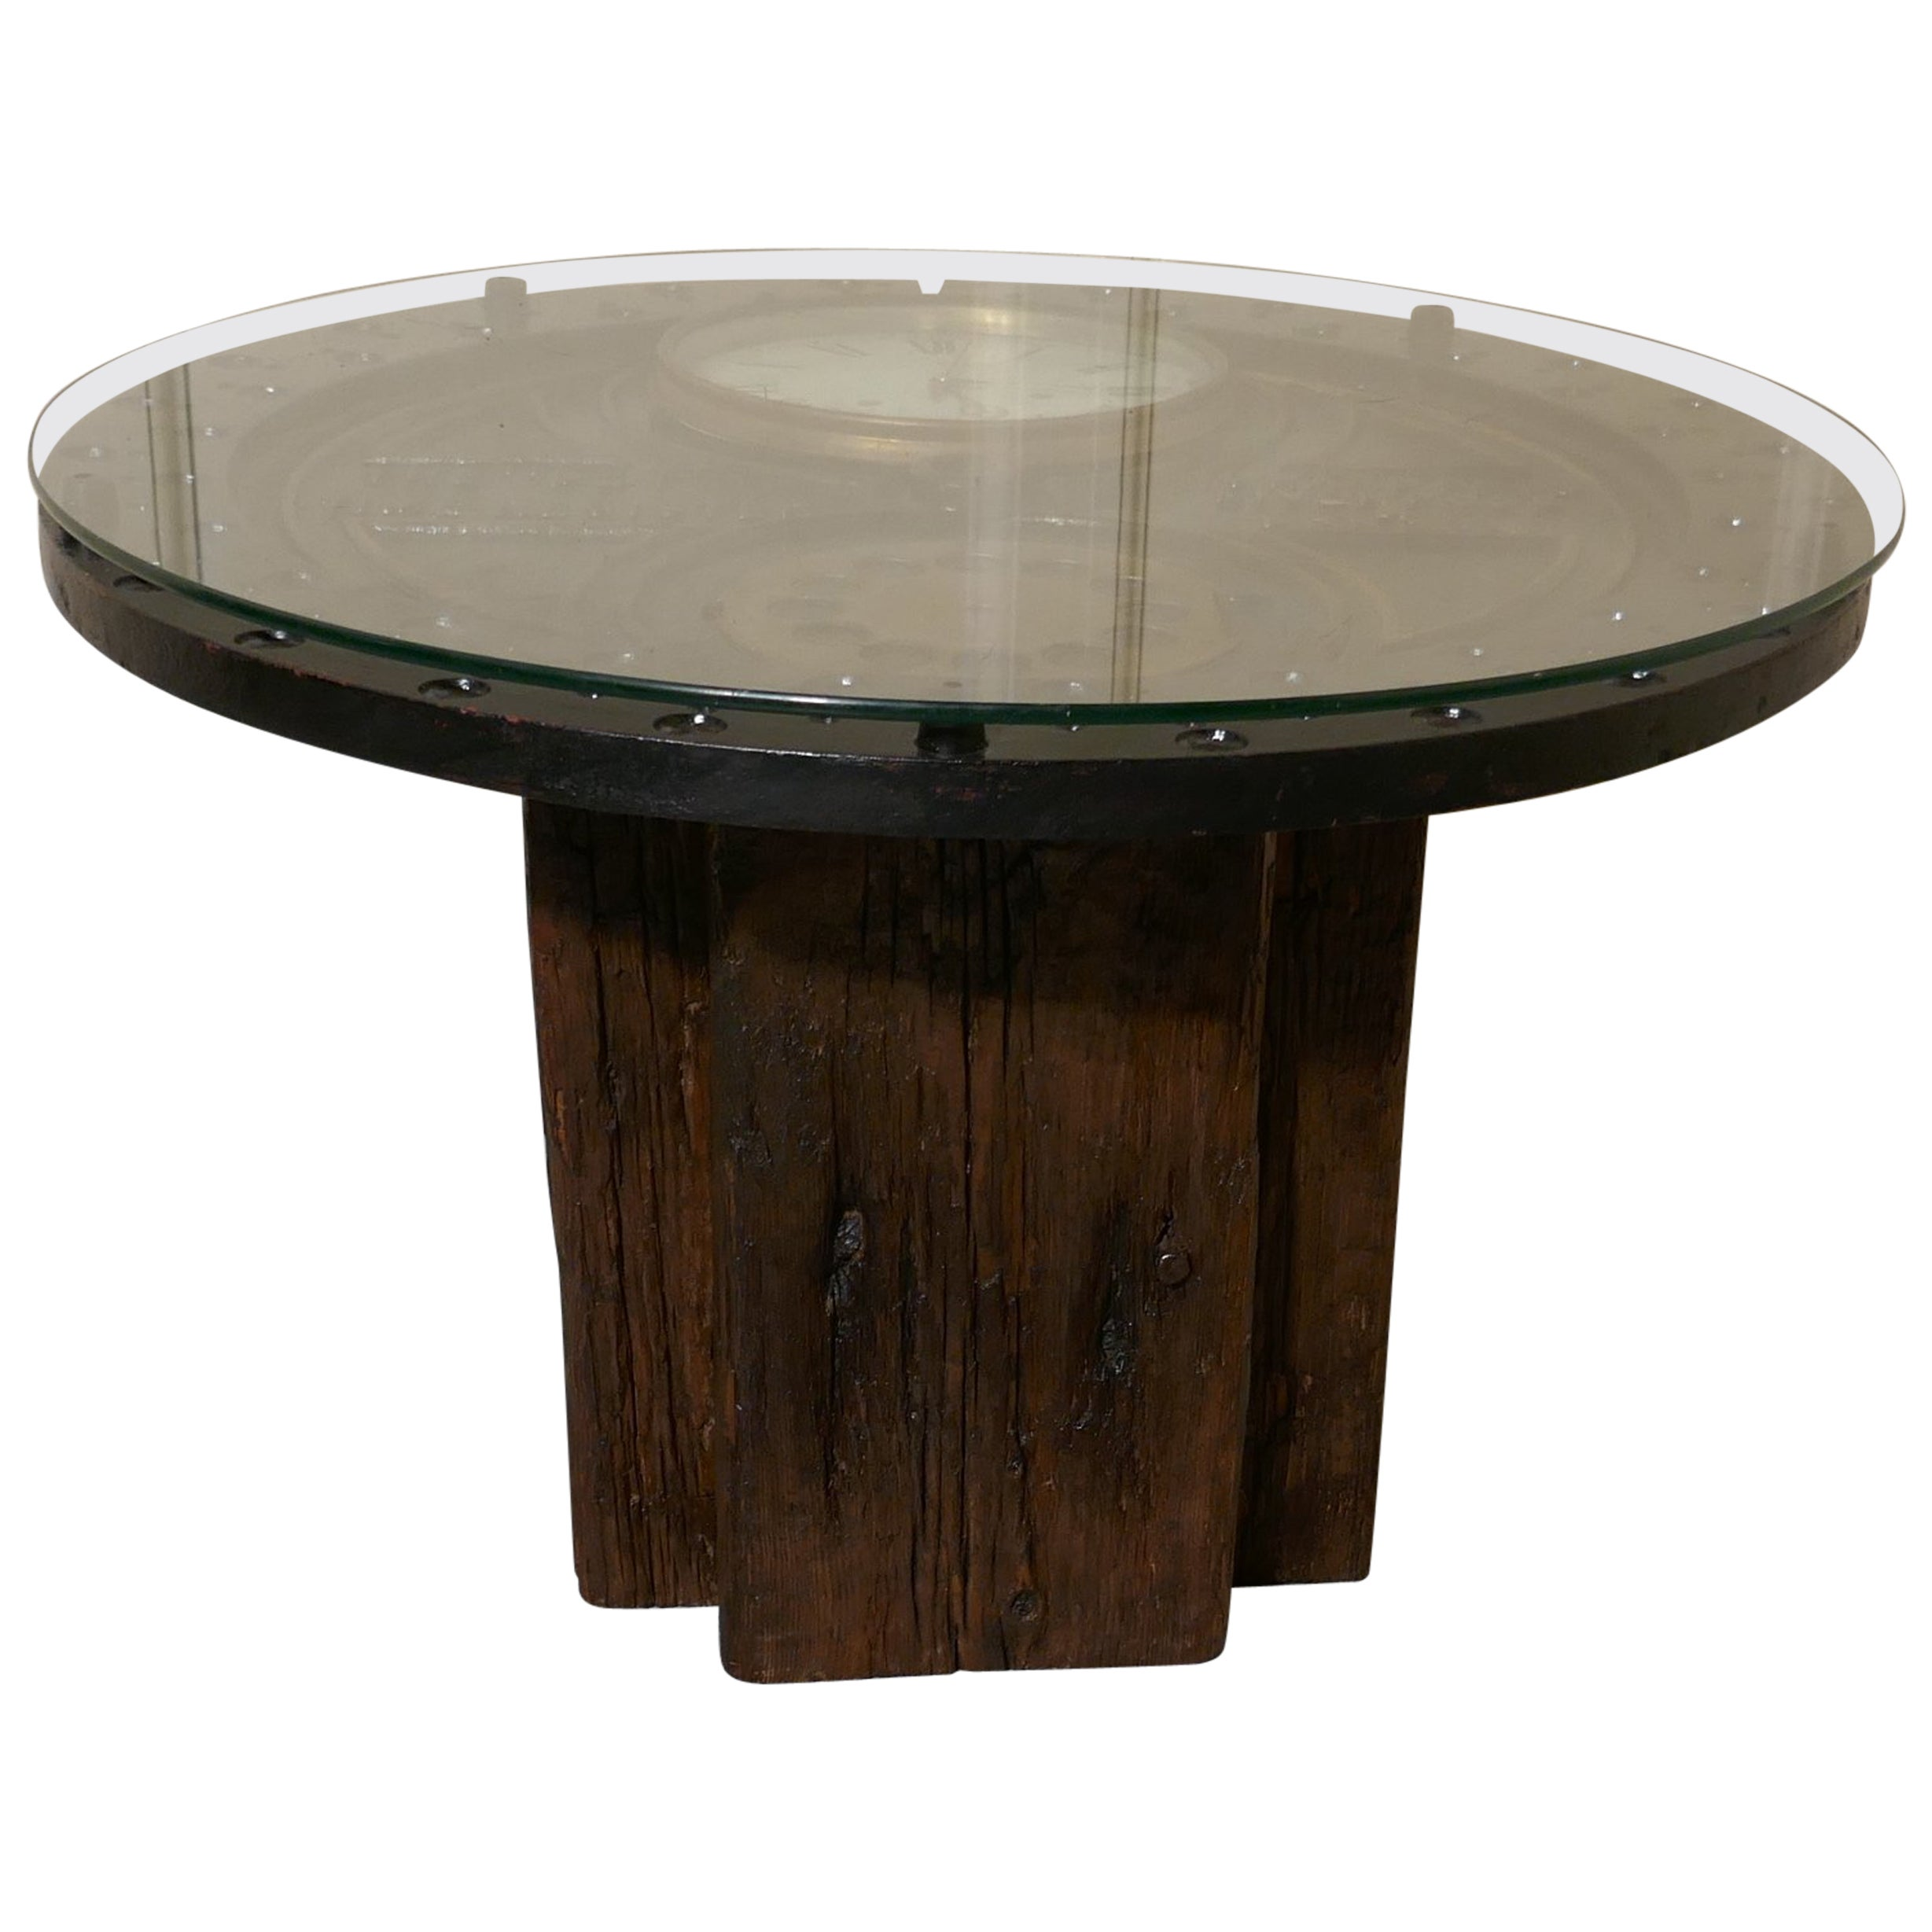 Stylish Designer Coffee Table, Industrial Antiques, Steam Punk